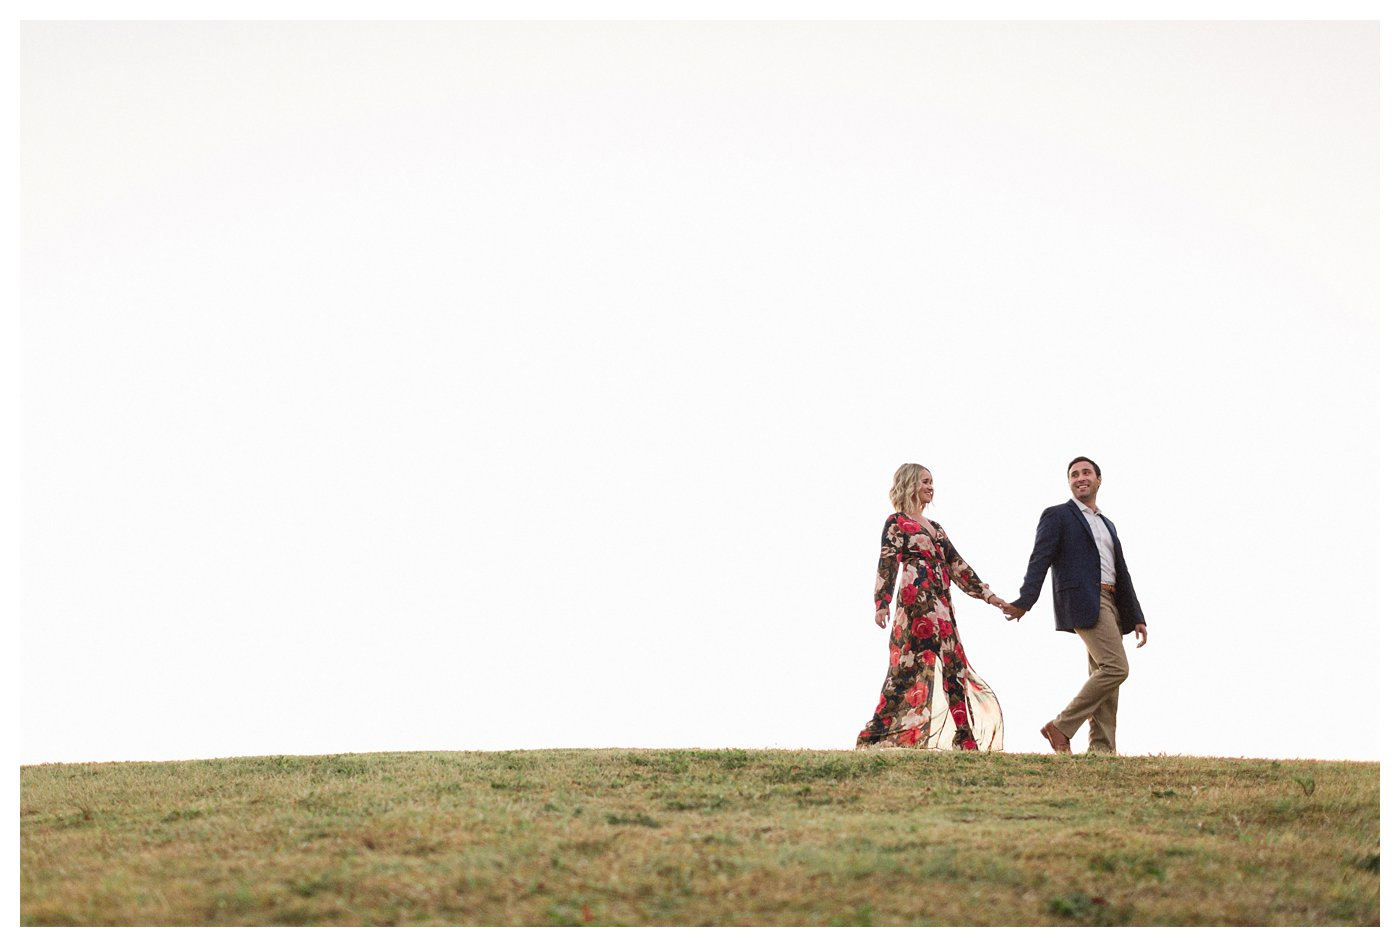 Dallas, Texas Engagement Photos by Amanda and Grady Photography